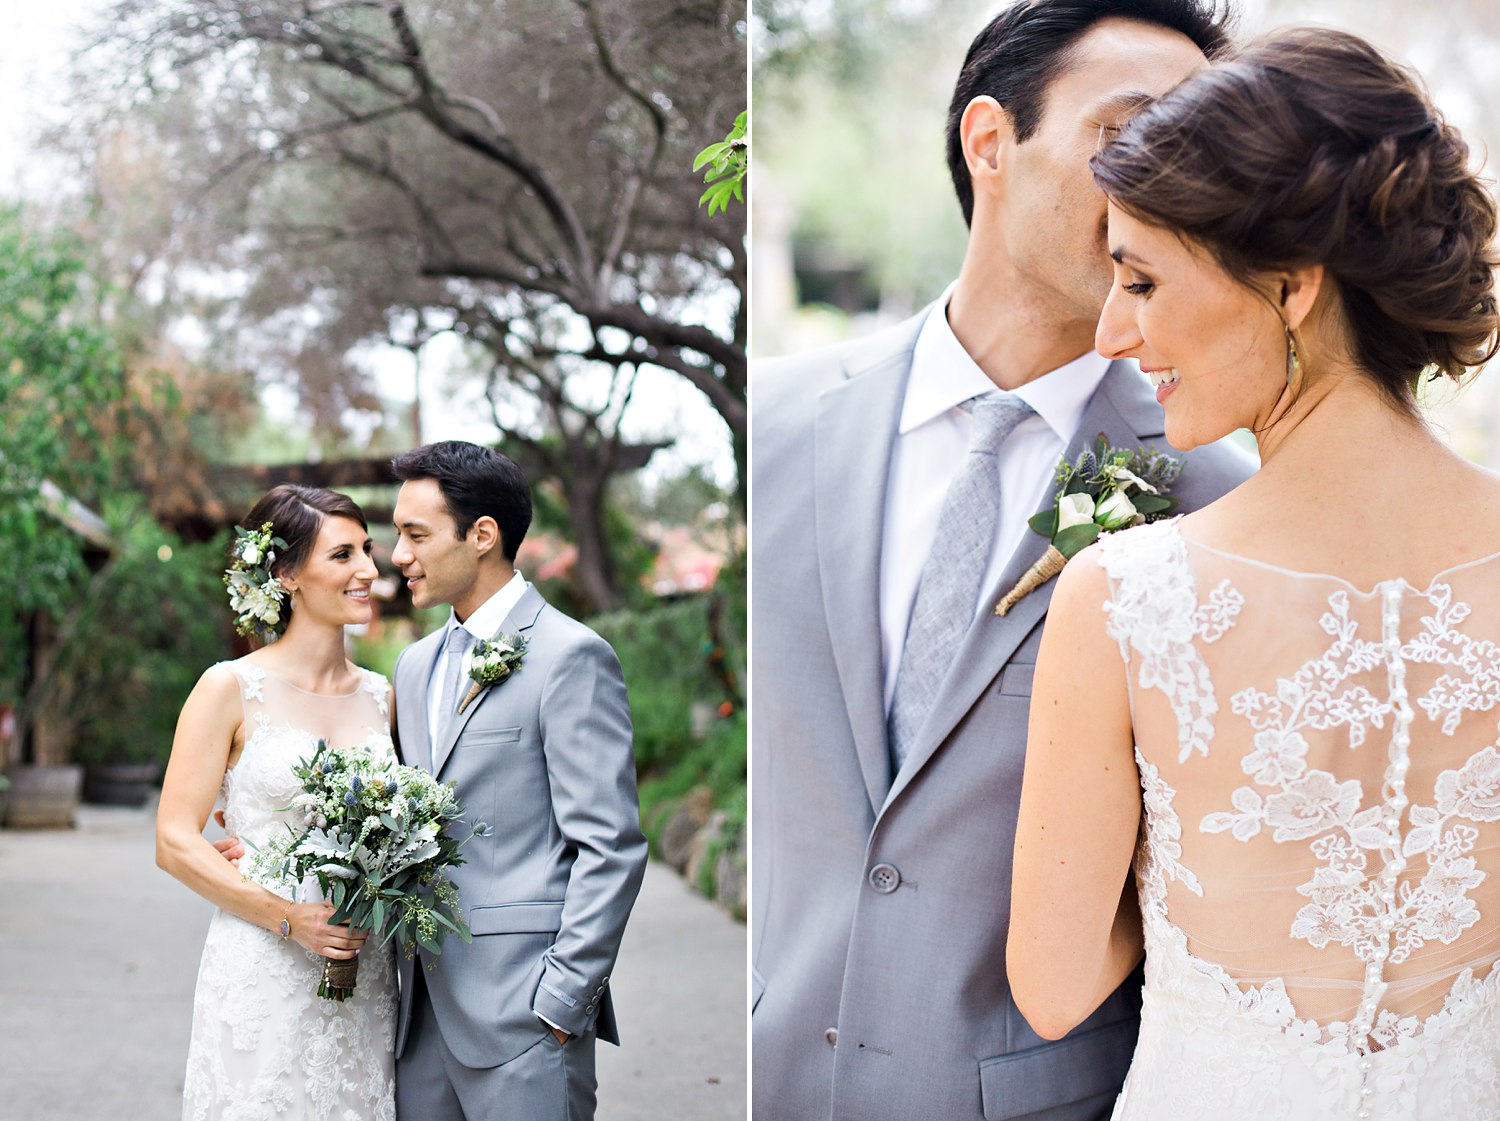 San Diego Wedding Photograher - Evelyn Molina-35.jpg